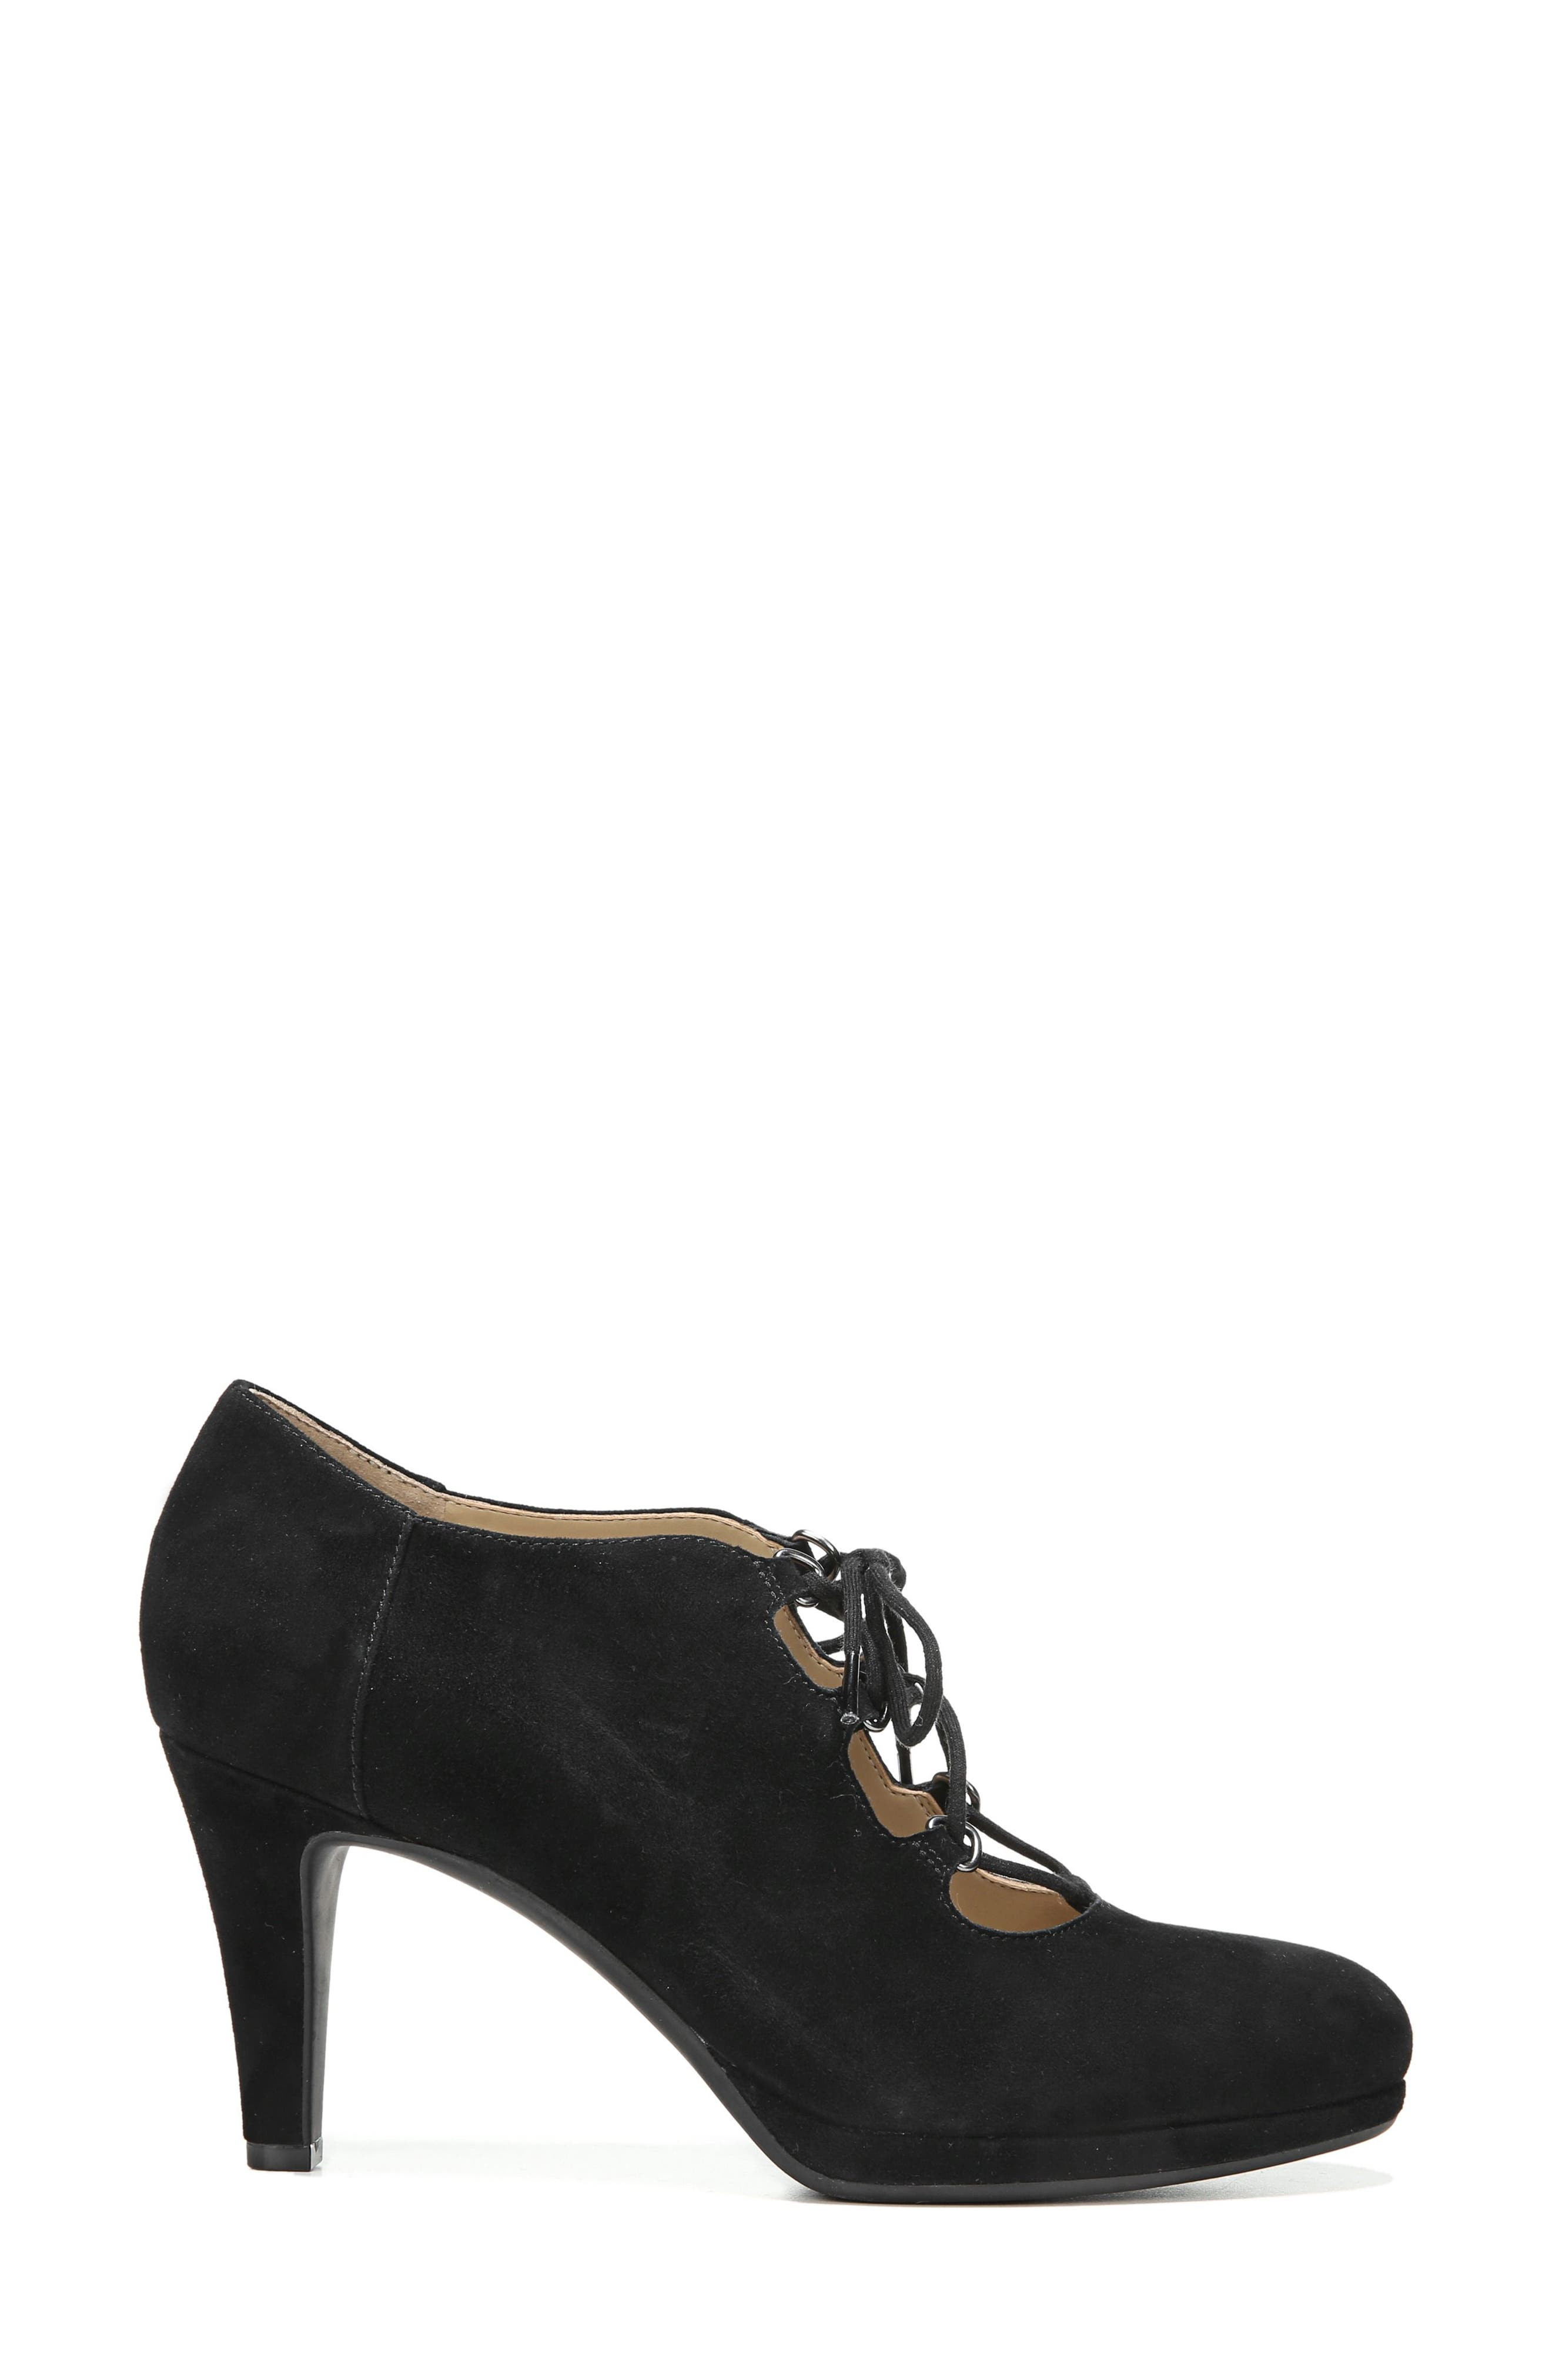 Alternate Image 3  - Naturalizer Macie Lace-Up Pump (Women)